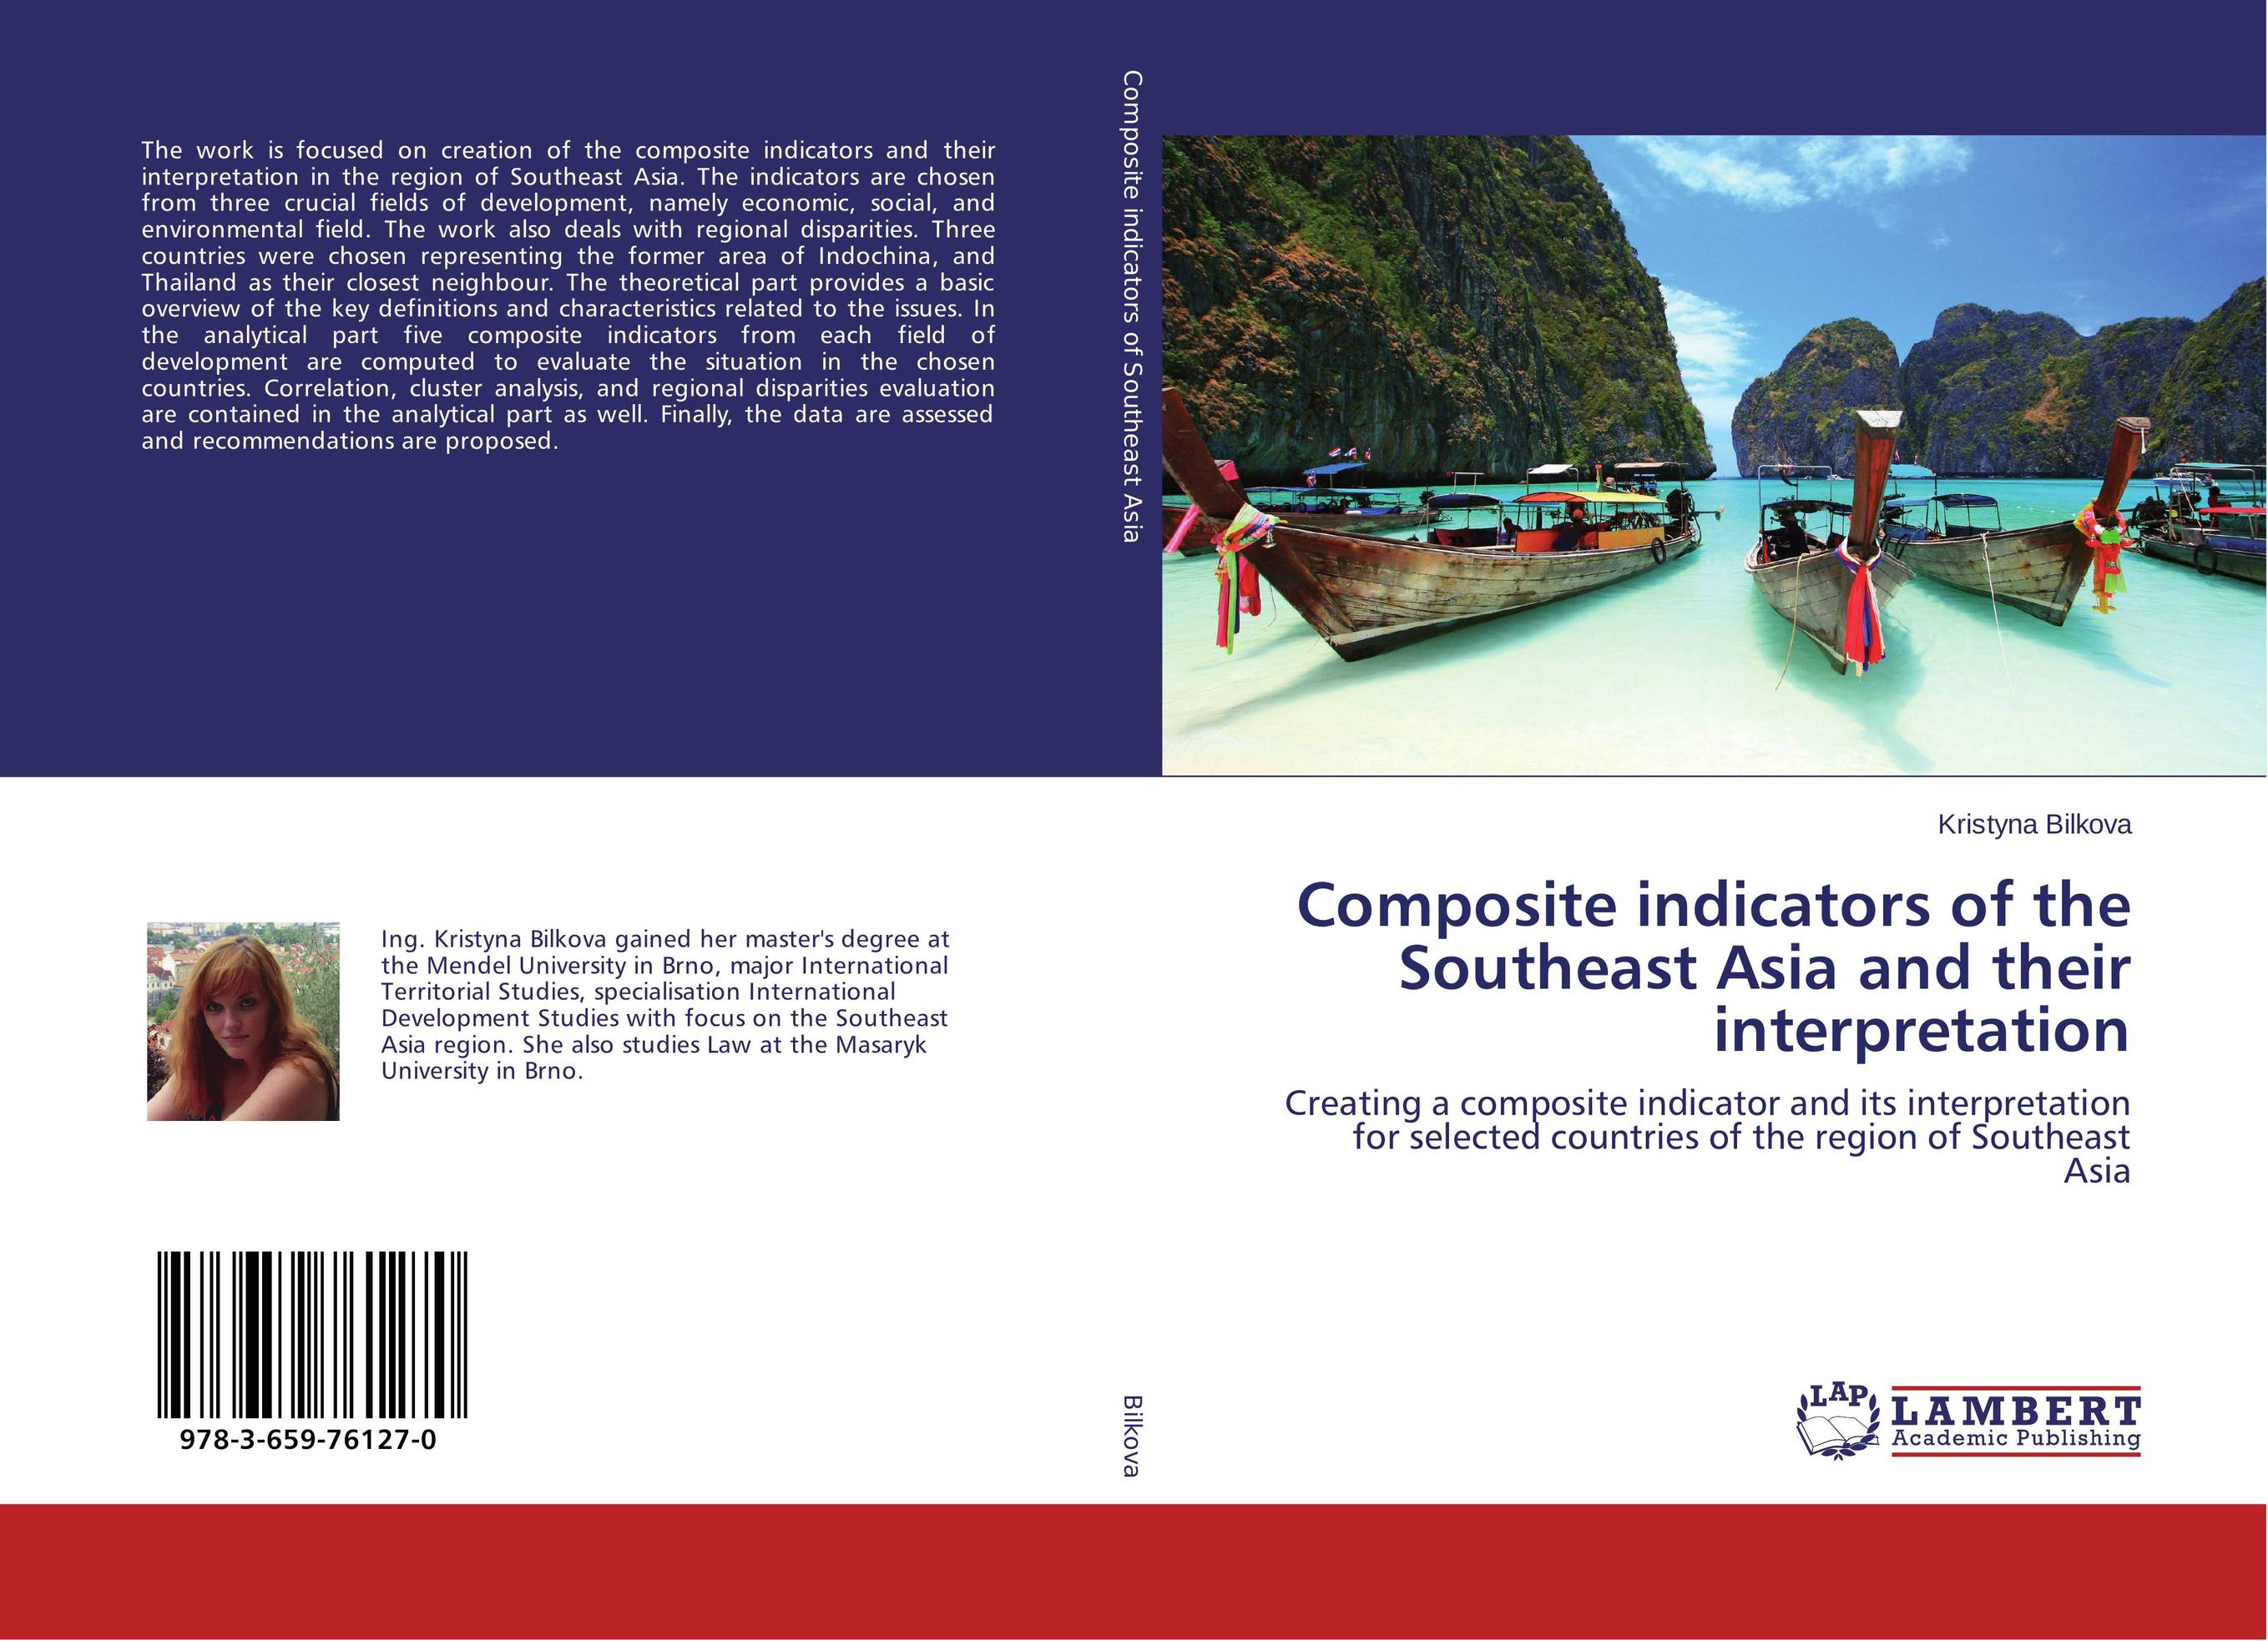 Composite indicators of the Southeast Asia and their interpretation richard yamarone the trader s guide to key economic indicators